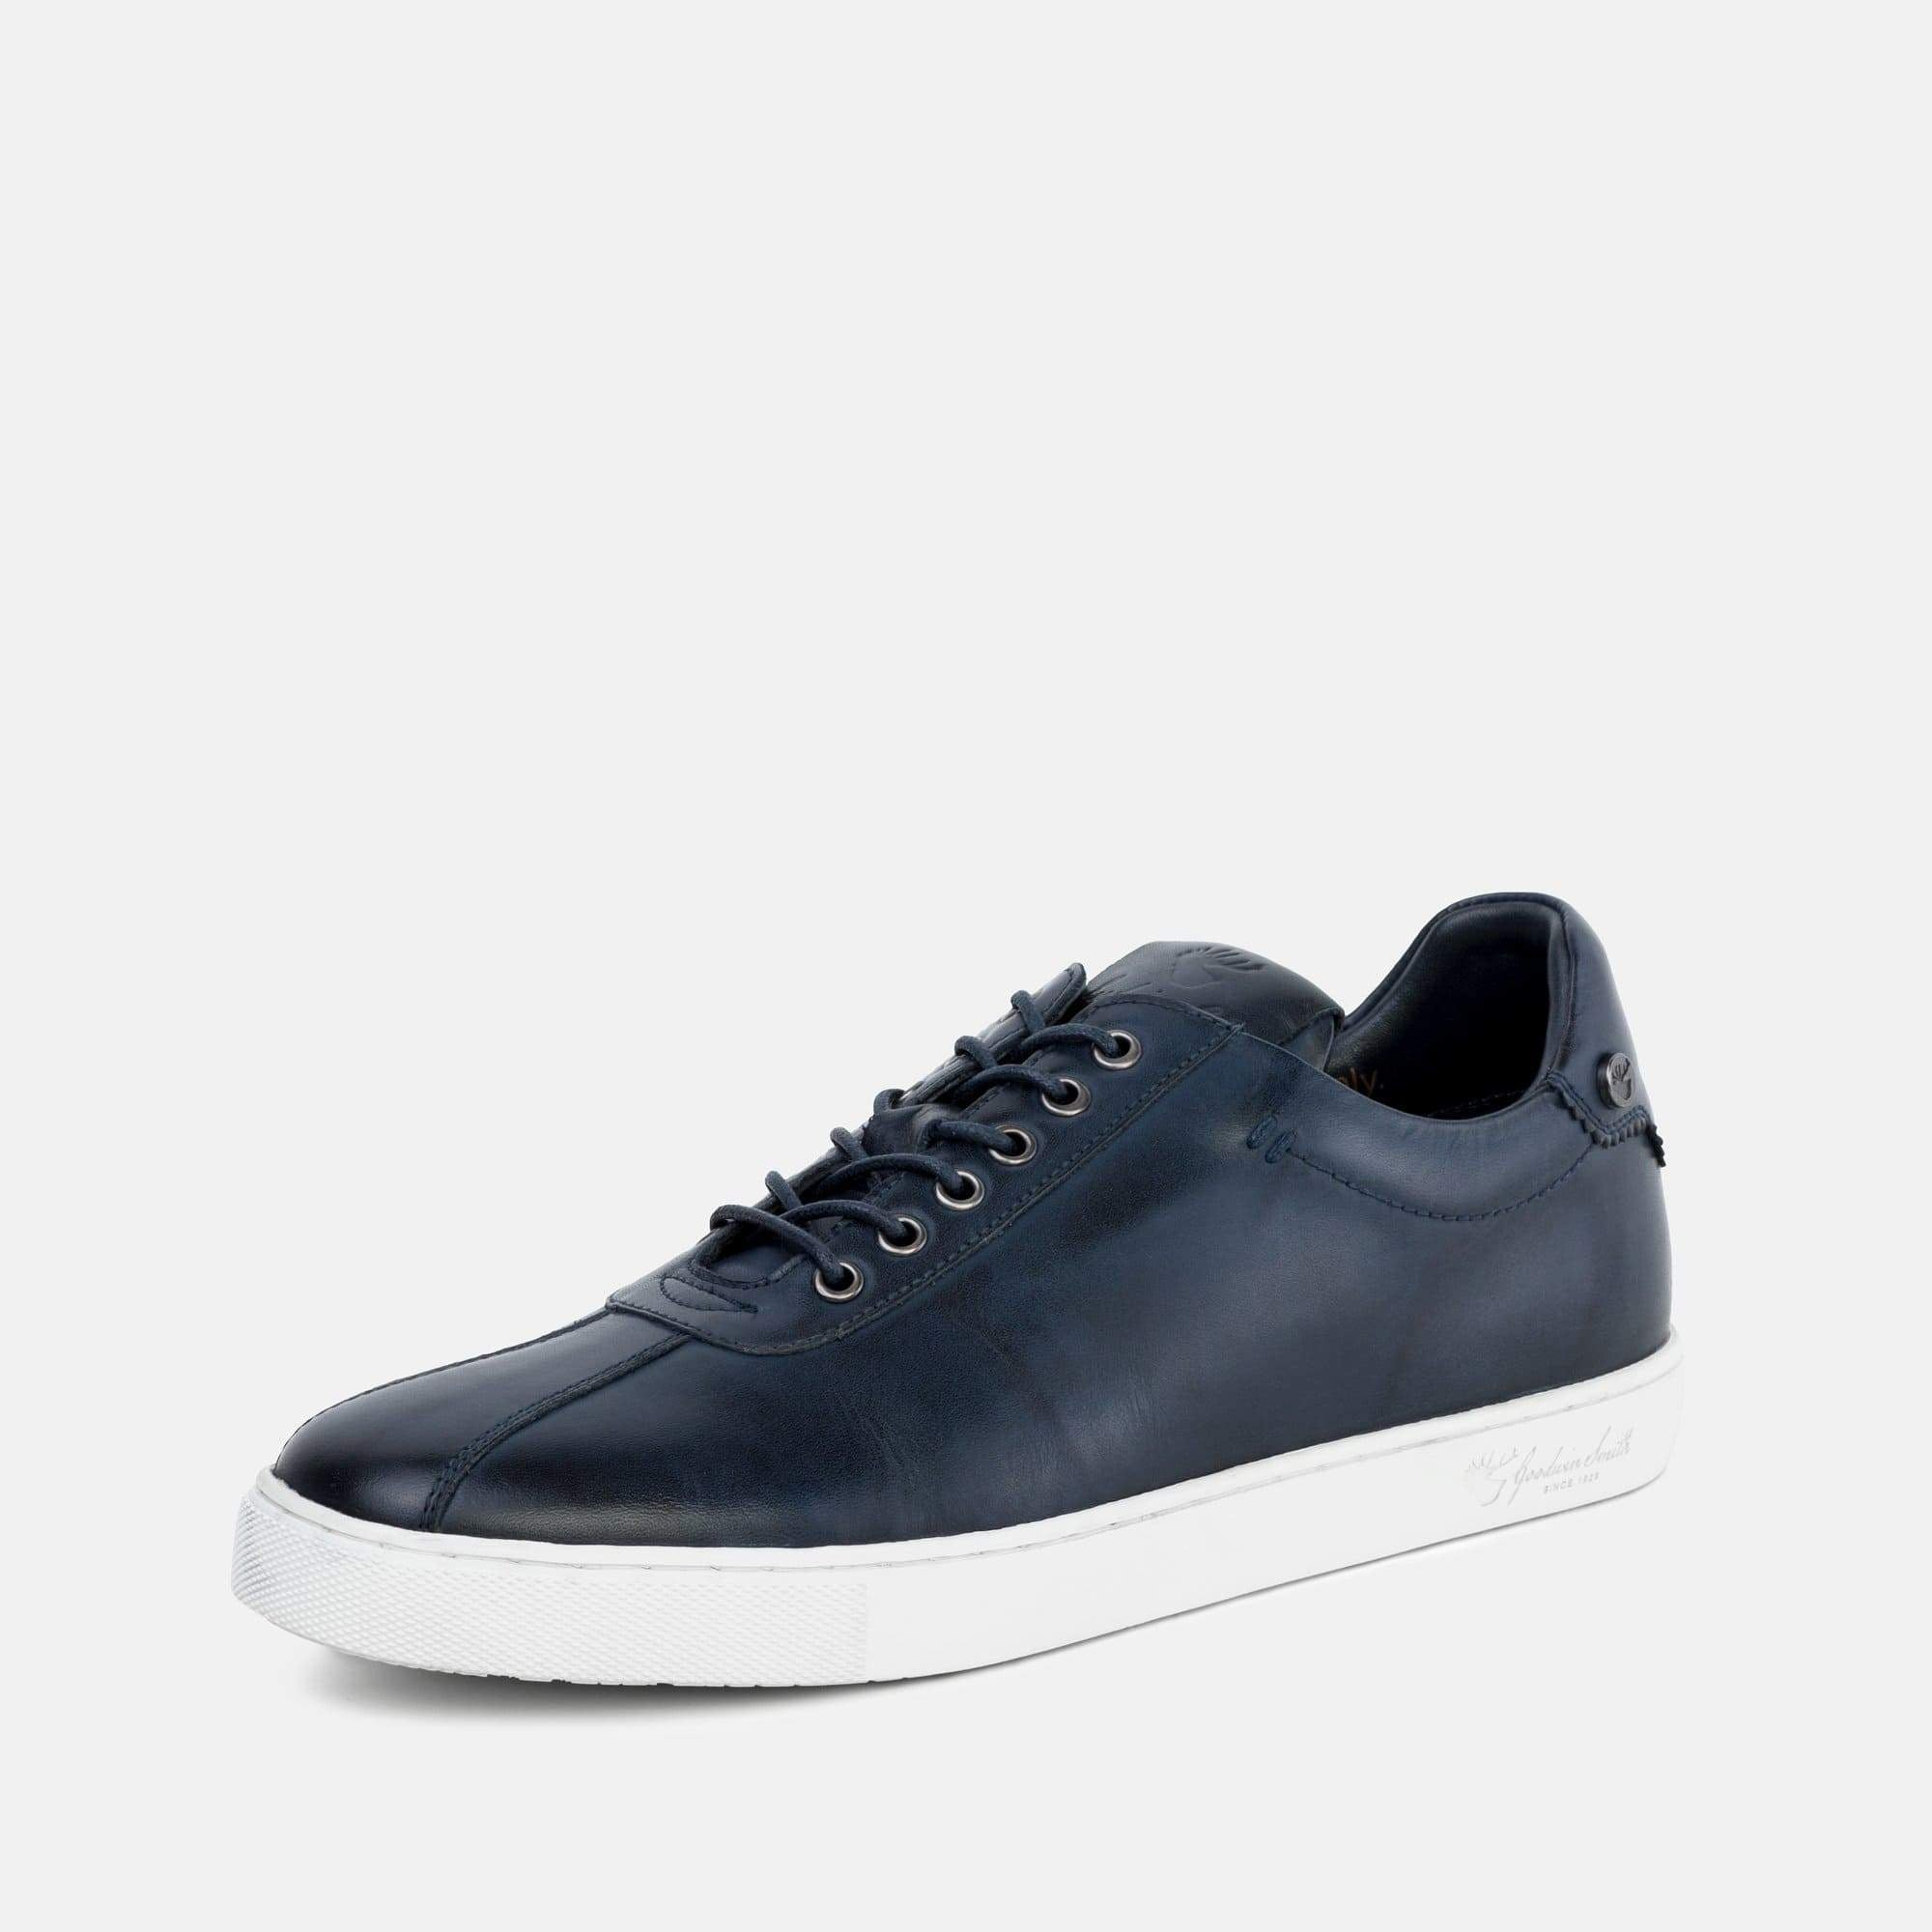 Goodwin Smith Footwear Lex Blue Smart Leather Plimsoll